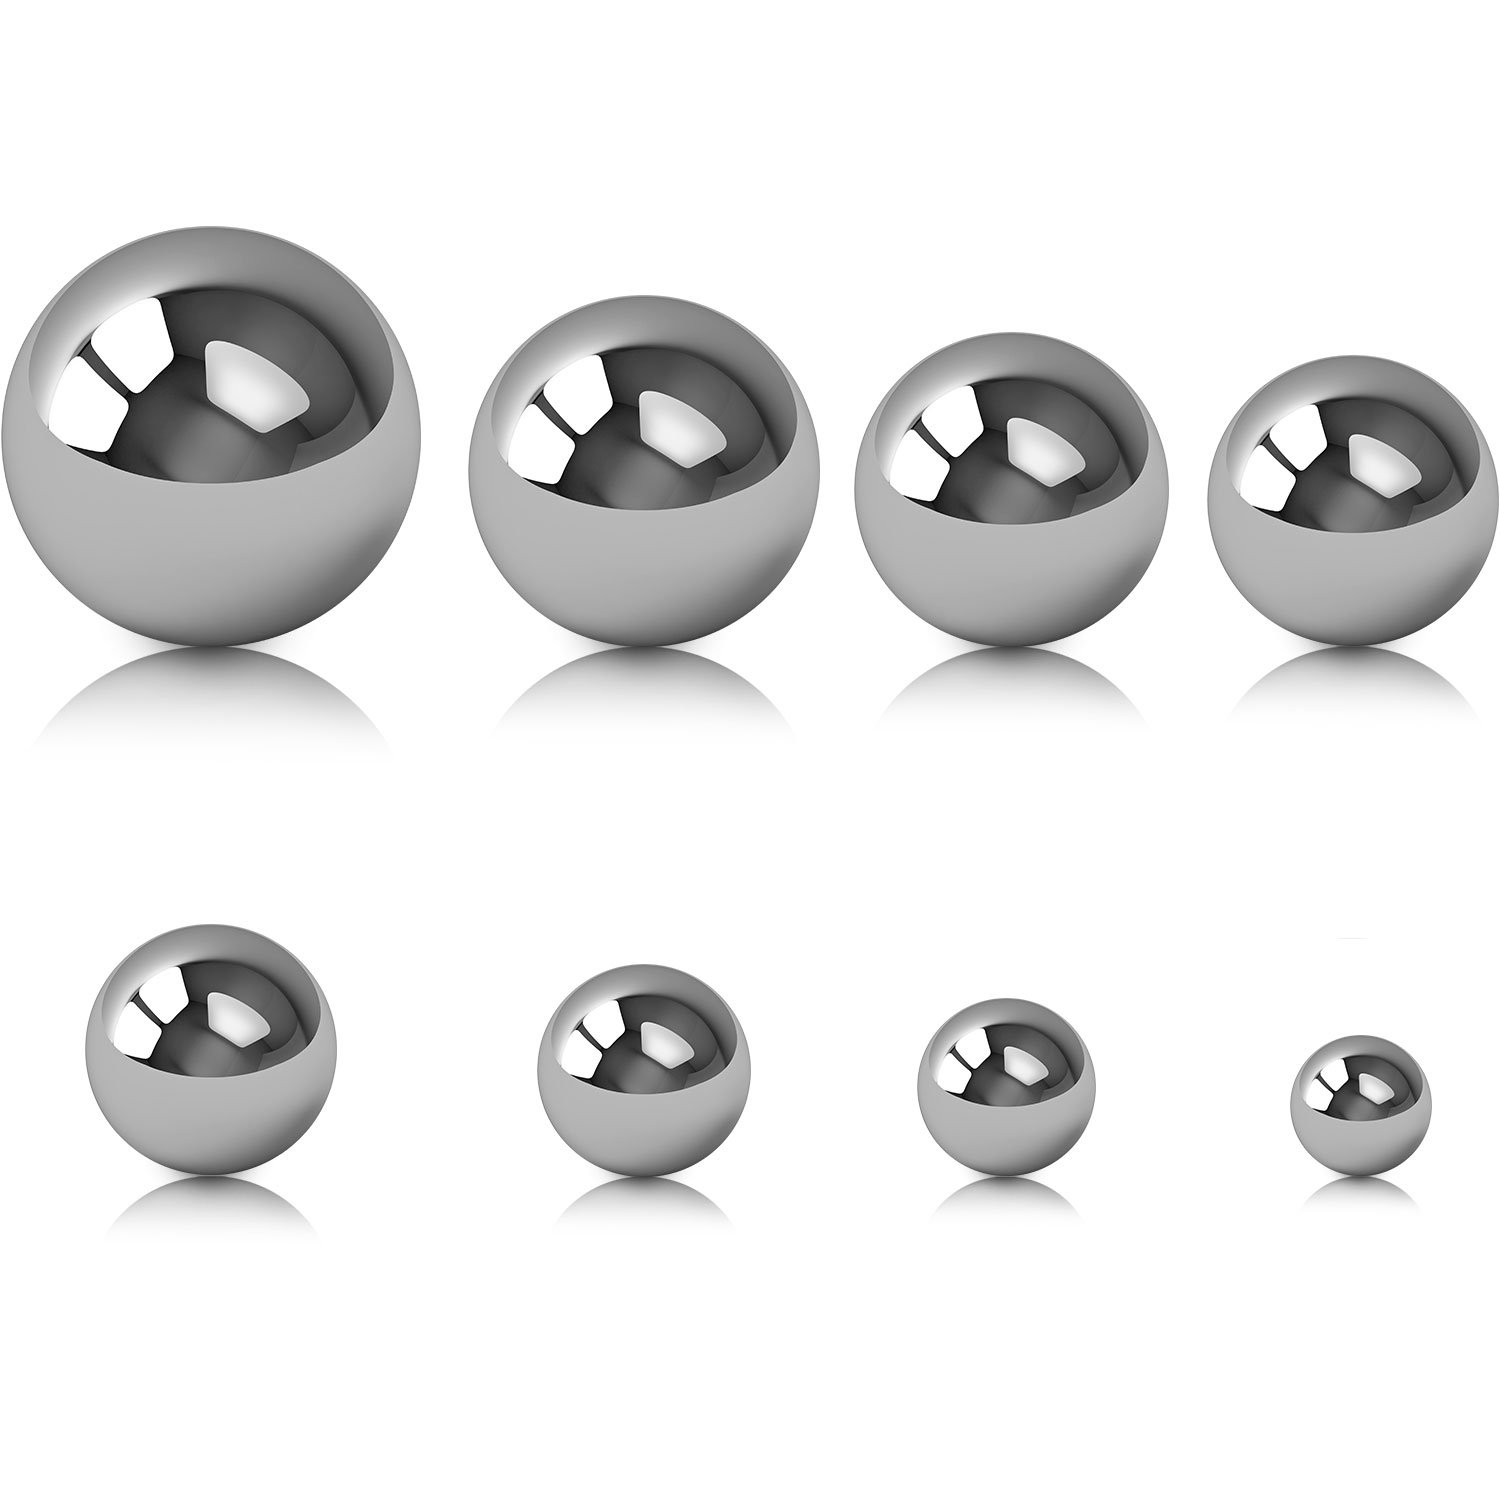 Steel Balls or Other Metal Objects